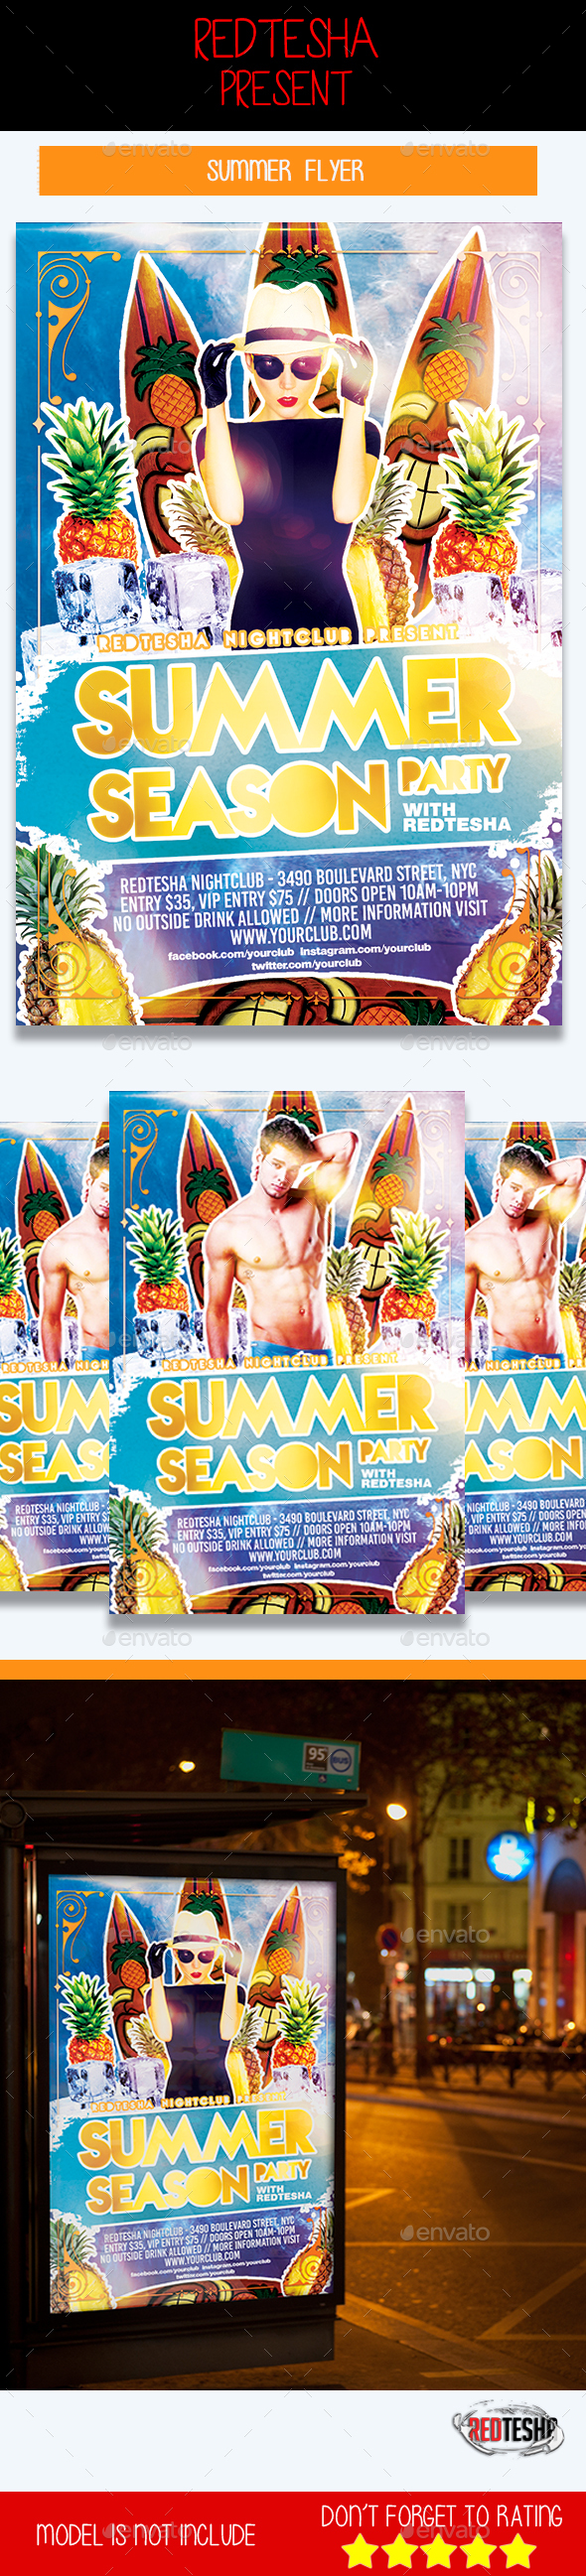 Summer Season Flyer - Clubs & Parties Events